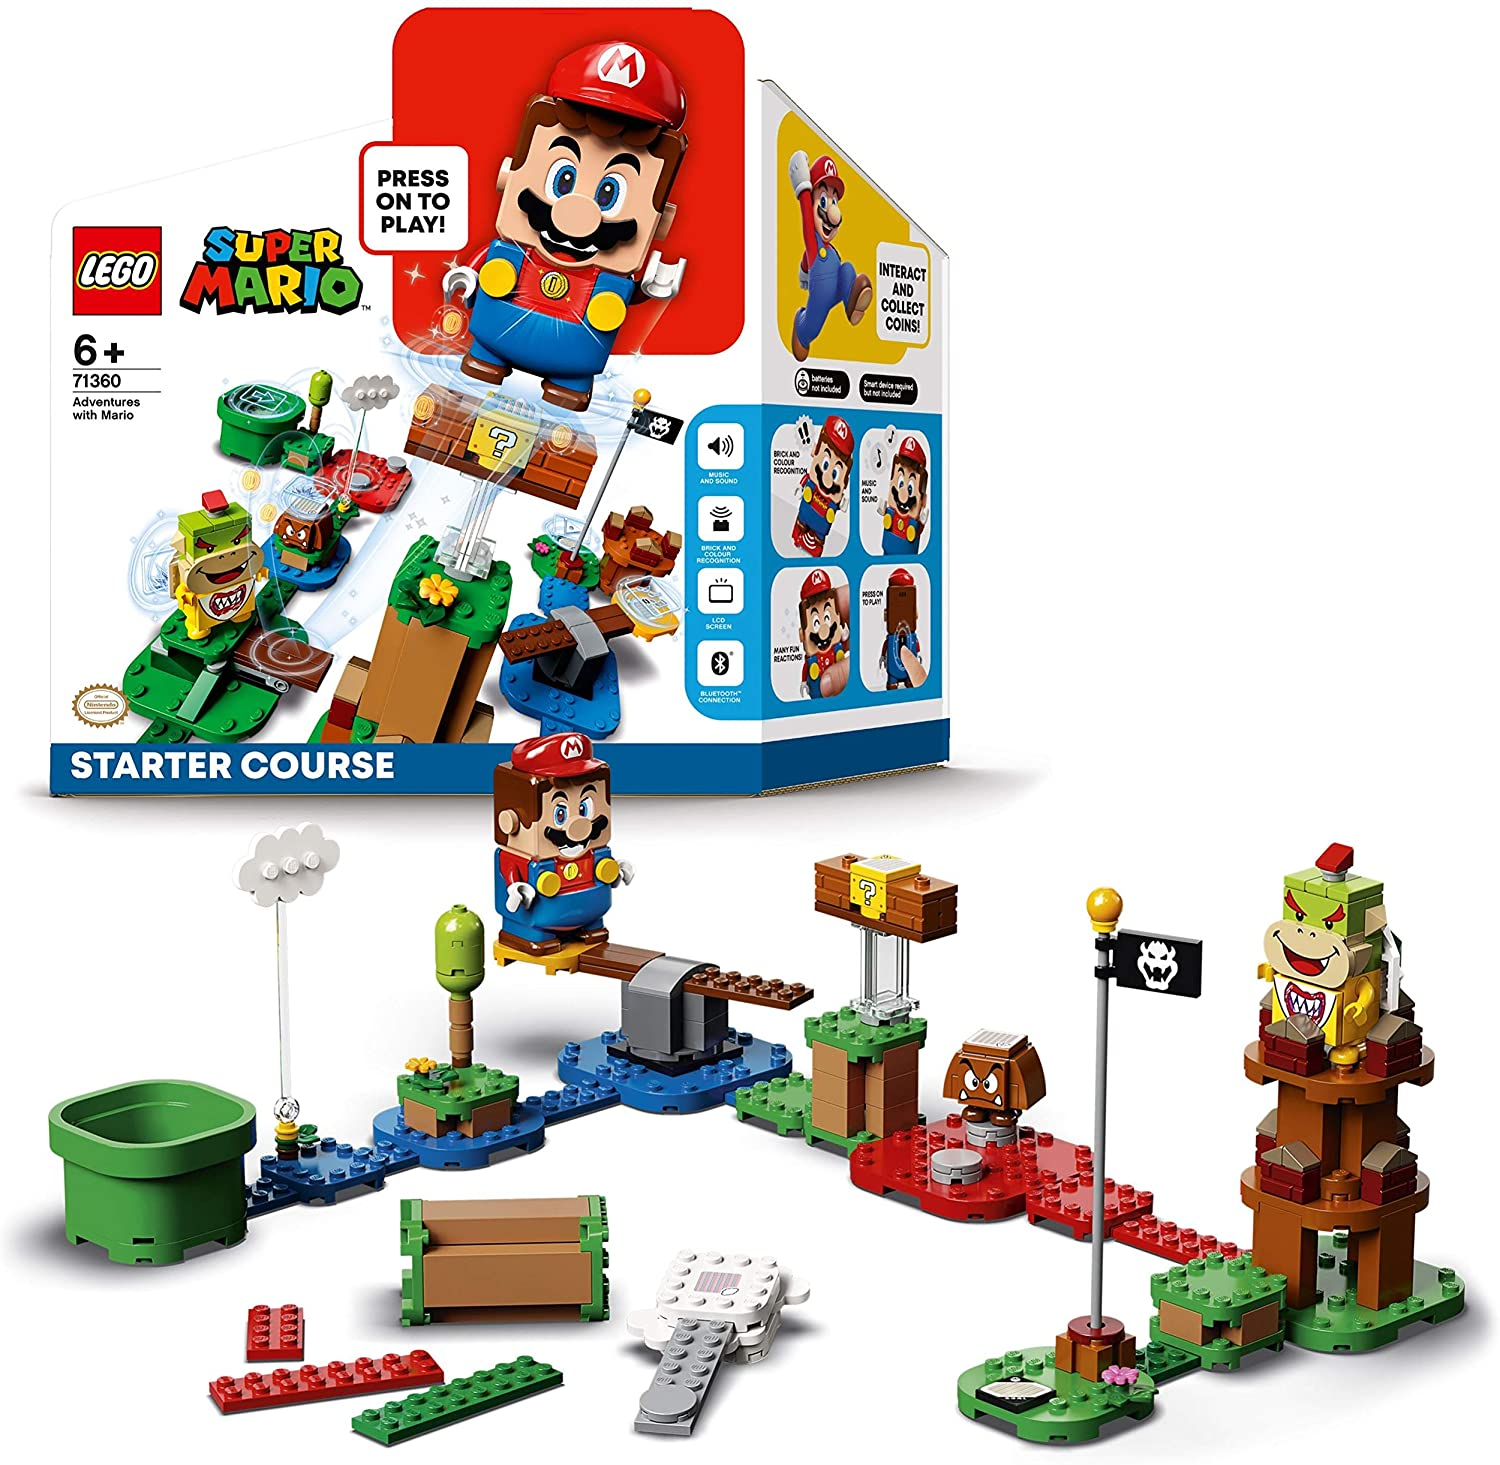 LEGO Super Mario: all products, prices and pre-order line